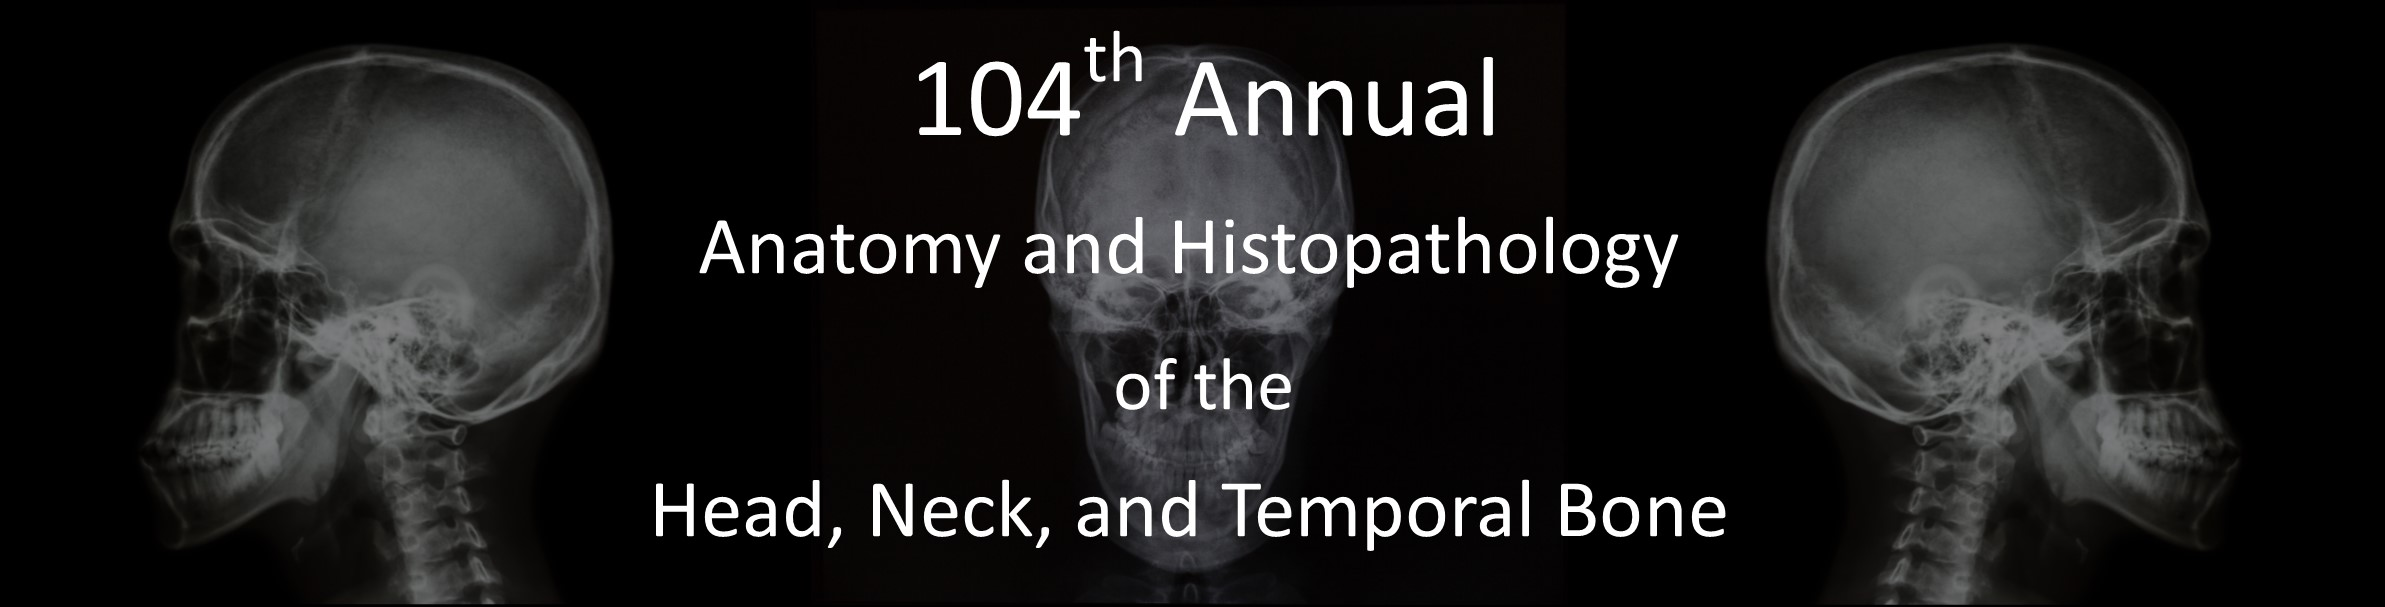 104th Annual Course on Anatomy & Histopathology of the Head, Neck & Temporal Bone Banner